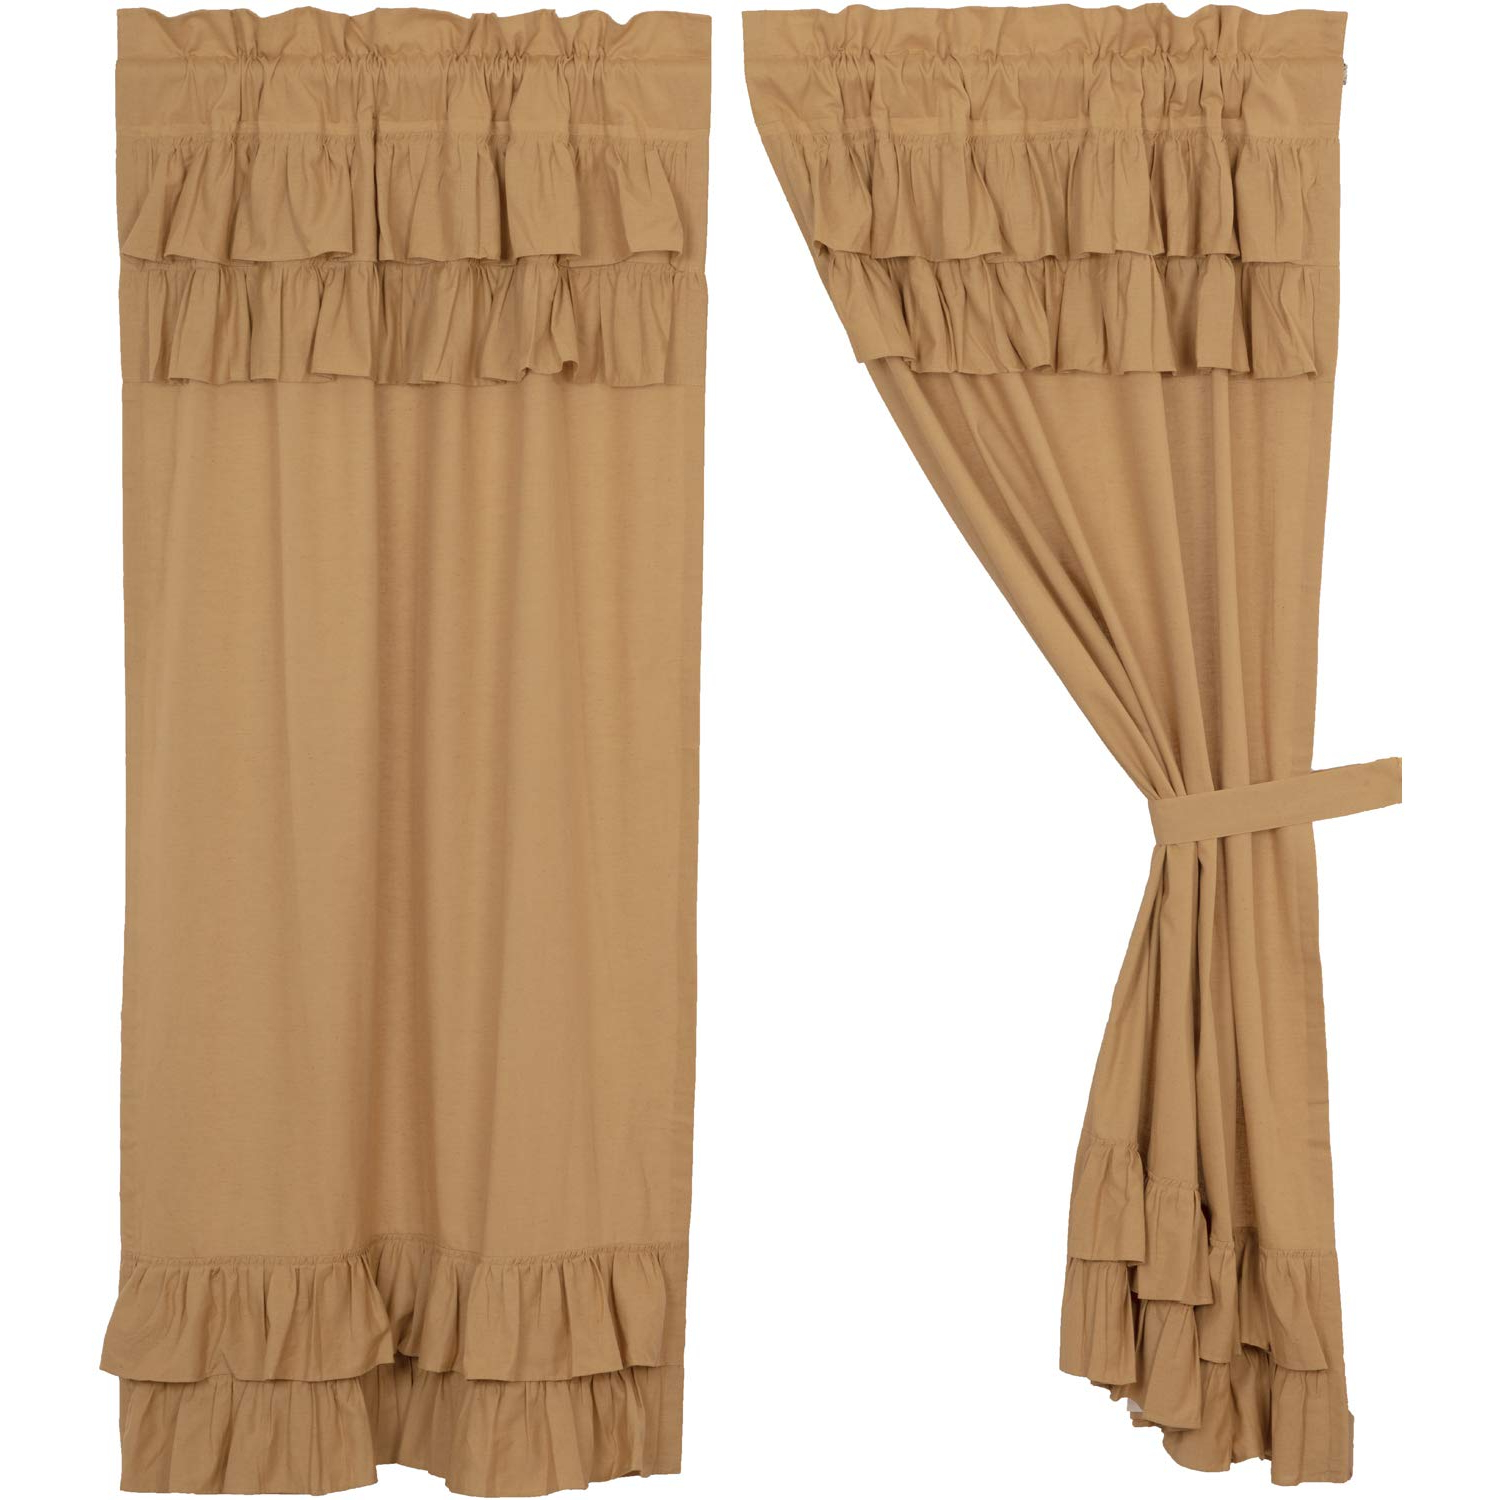 Rod Pocket Cotton Linen Blend Solid Color Flax Kitchen Curtains With Regard To Best And Newest Amazon: Vhc Brands Farmhouse Curtains Simple Life Rod (View 10 of 20)